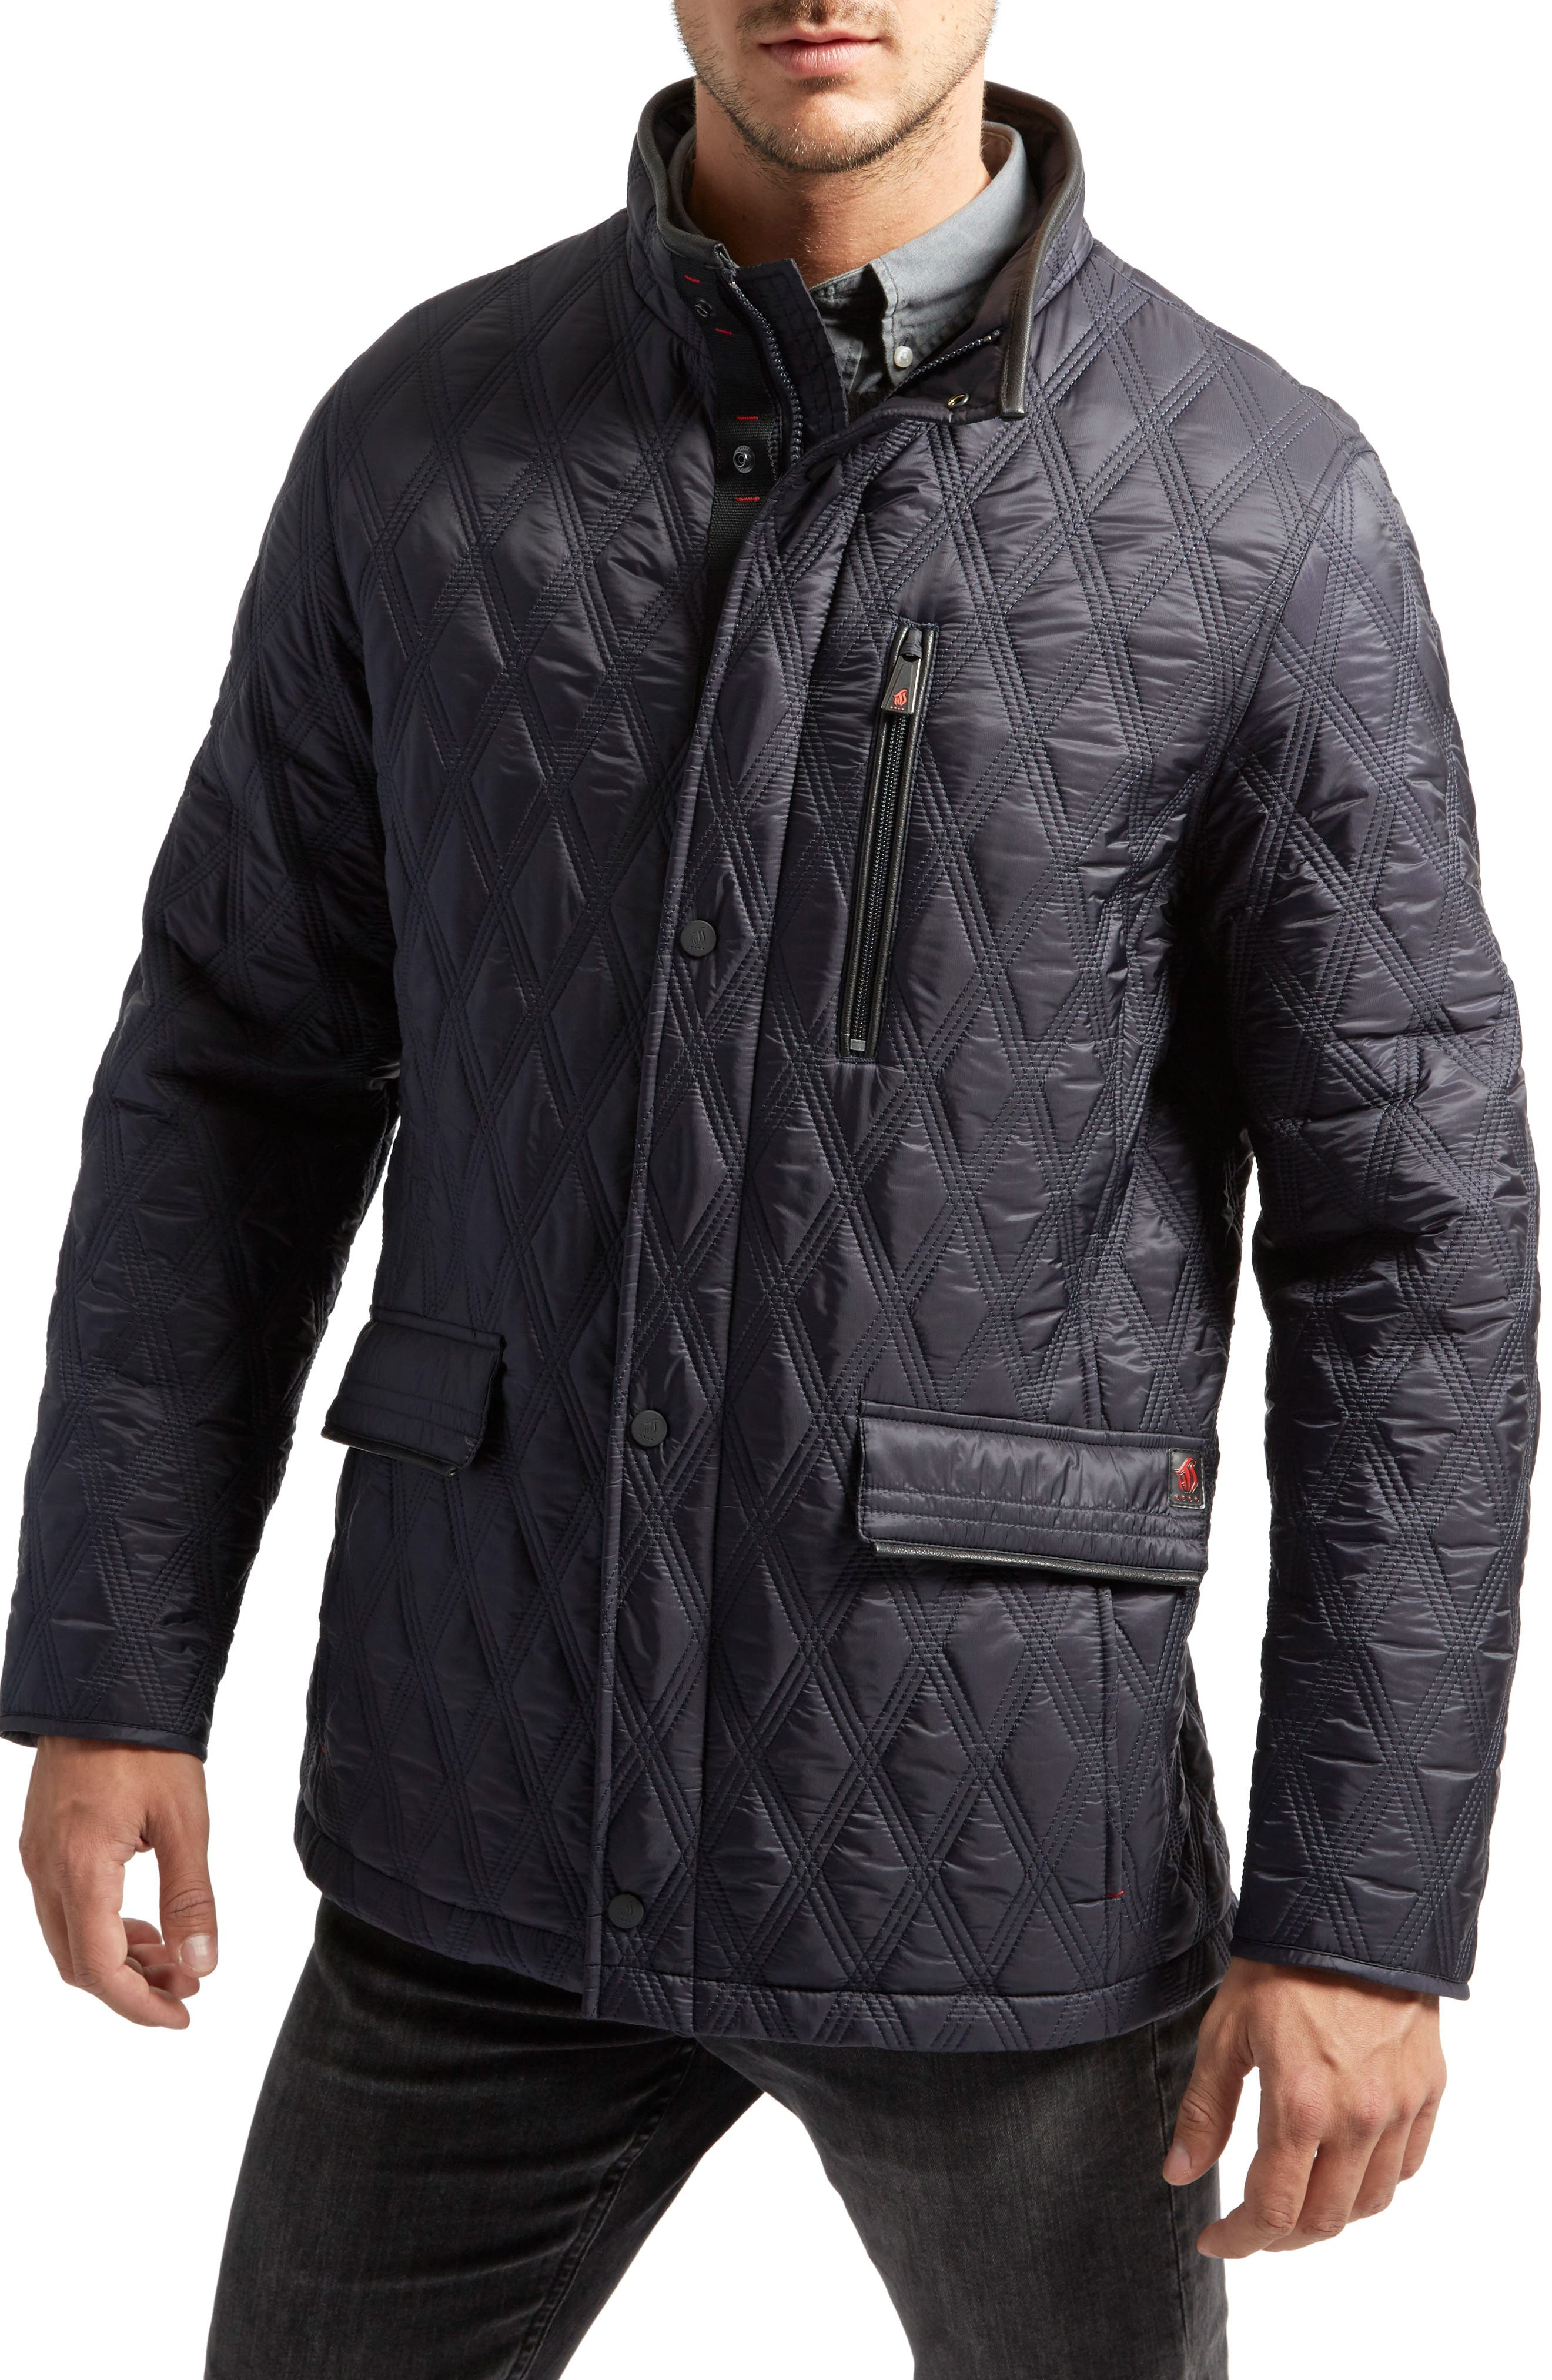 Prichard Triple Stitch Quilted Heat System Jacket,                             Main thumbnail 1, color,                             Midnight